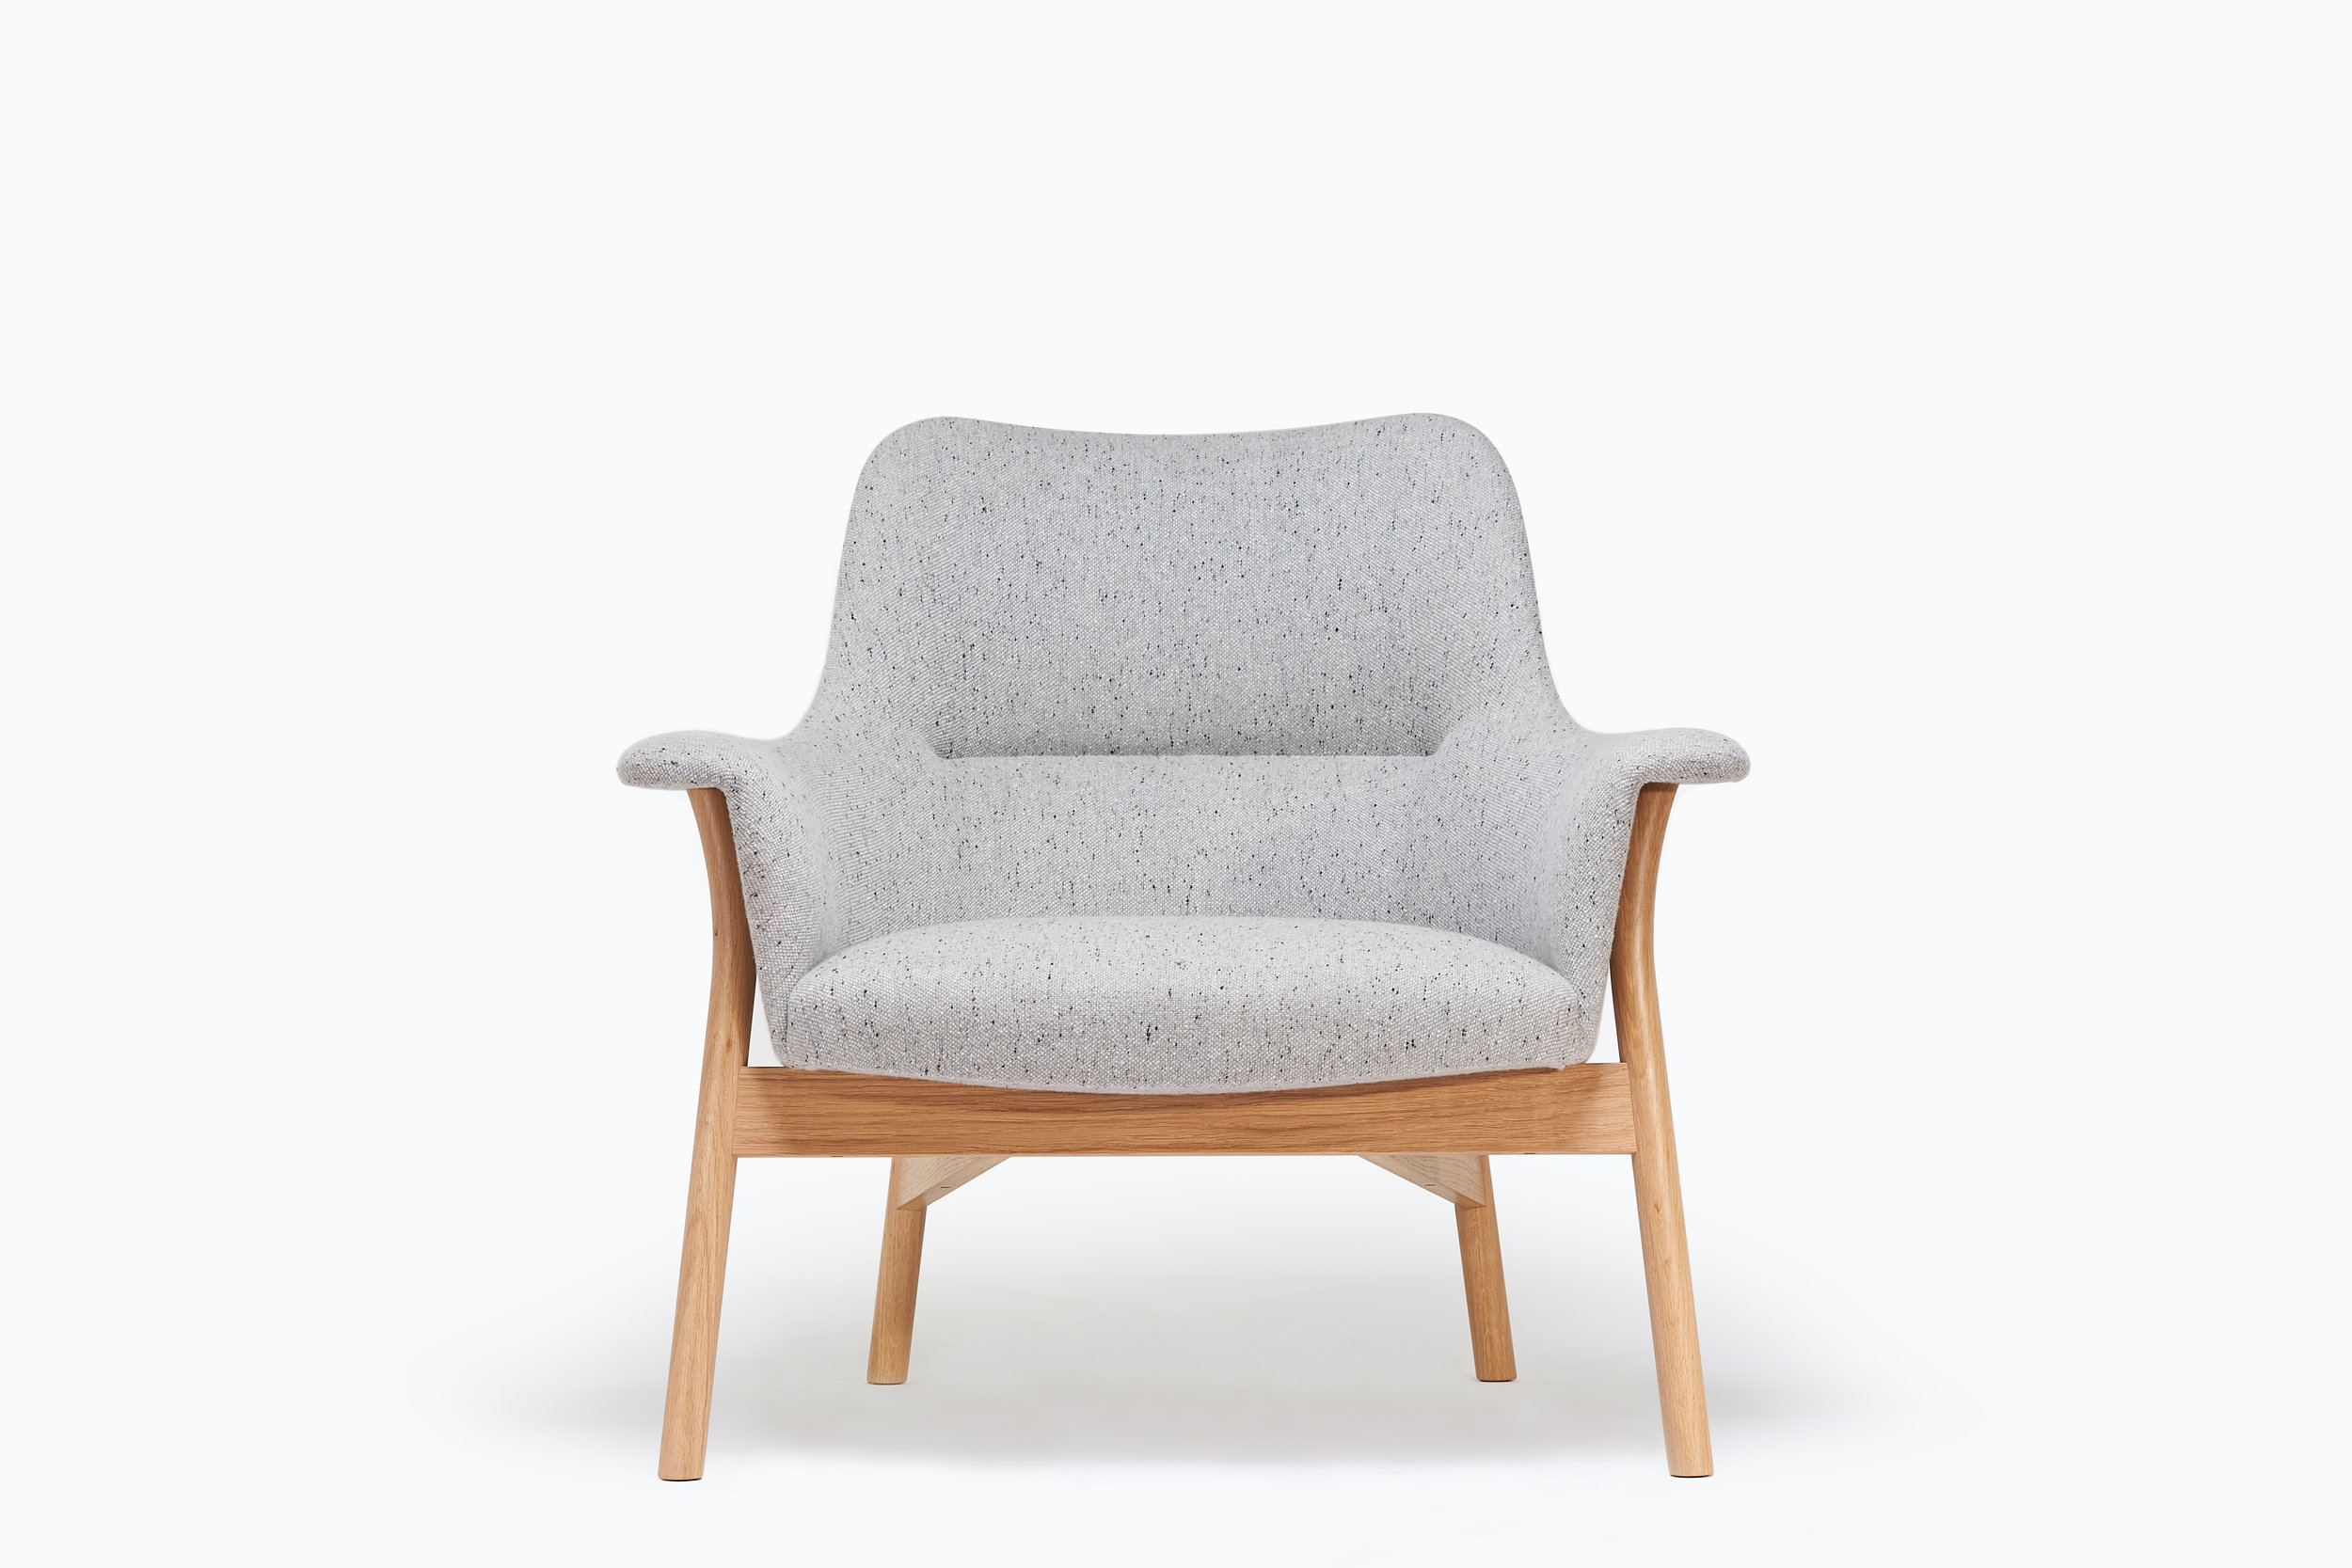 Grey new wool upholstered lounge chair in Oxbow Collection by designer maker Namon Gaston